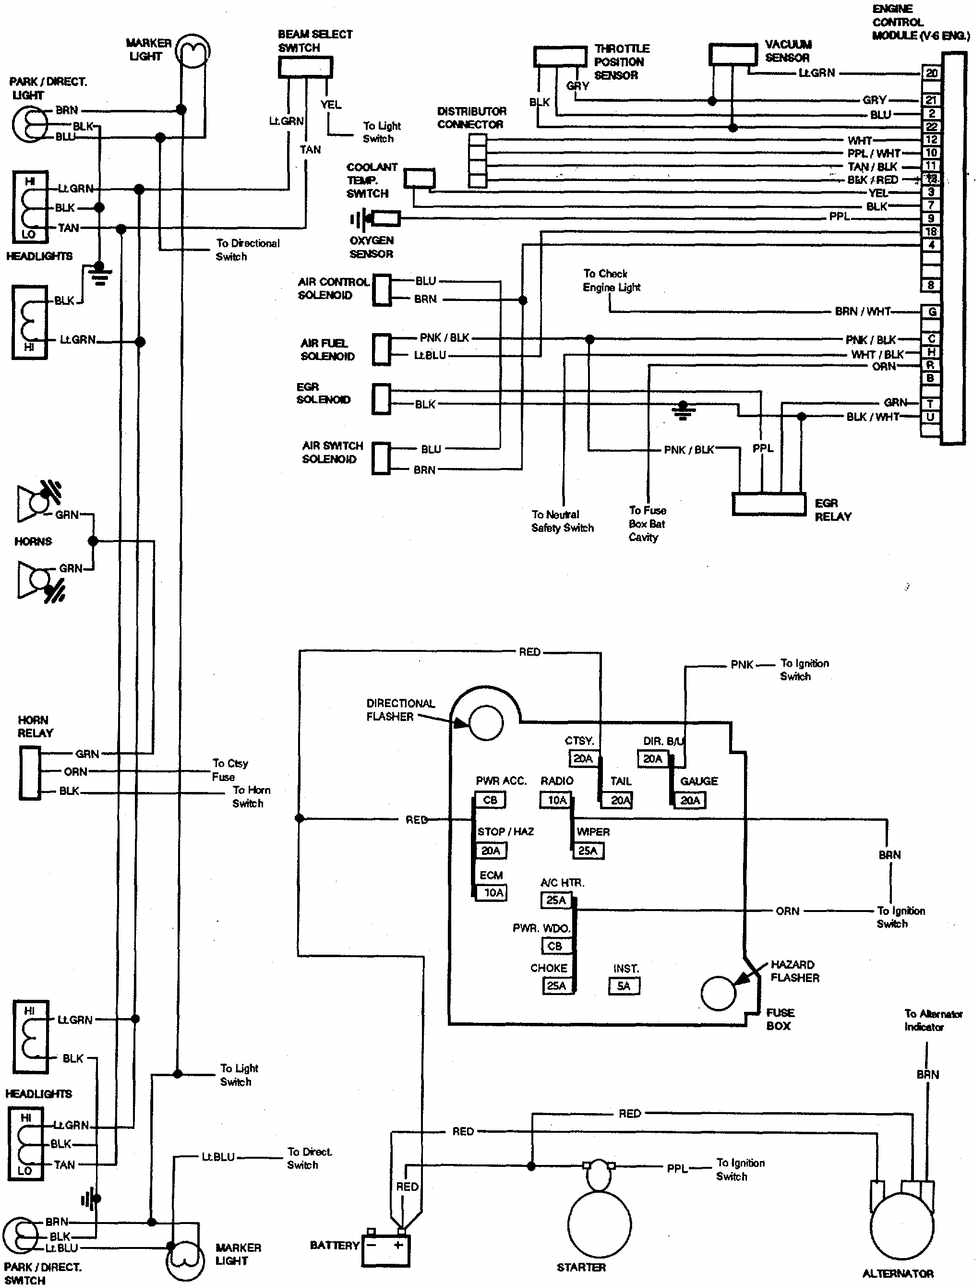 Chevrolet V8 Trucks 19811987 Electrical    Wiring       Diagram